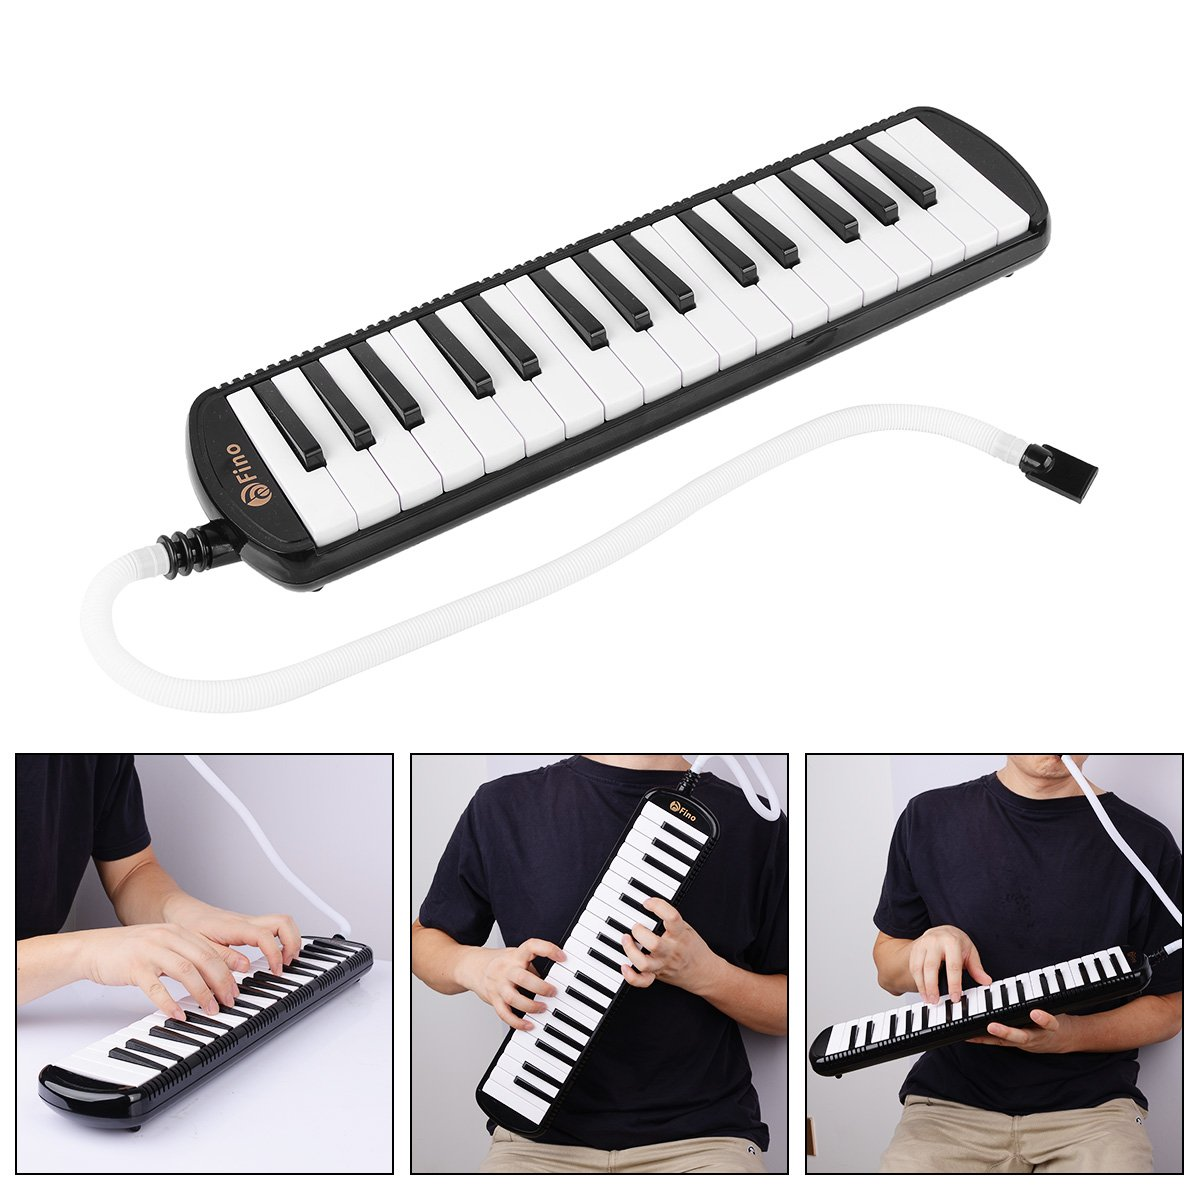 FINO 32 Key Melodica Instrument Air Piano Keyboards Pianica Wind Musical Instrument Folk World Key Instruments with Mouthpiece Tube Set Portable for Music Lover Beginners Gift with Carrying Bag Black by FINO (Image #2)